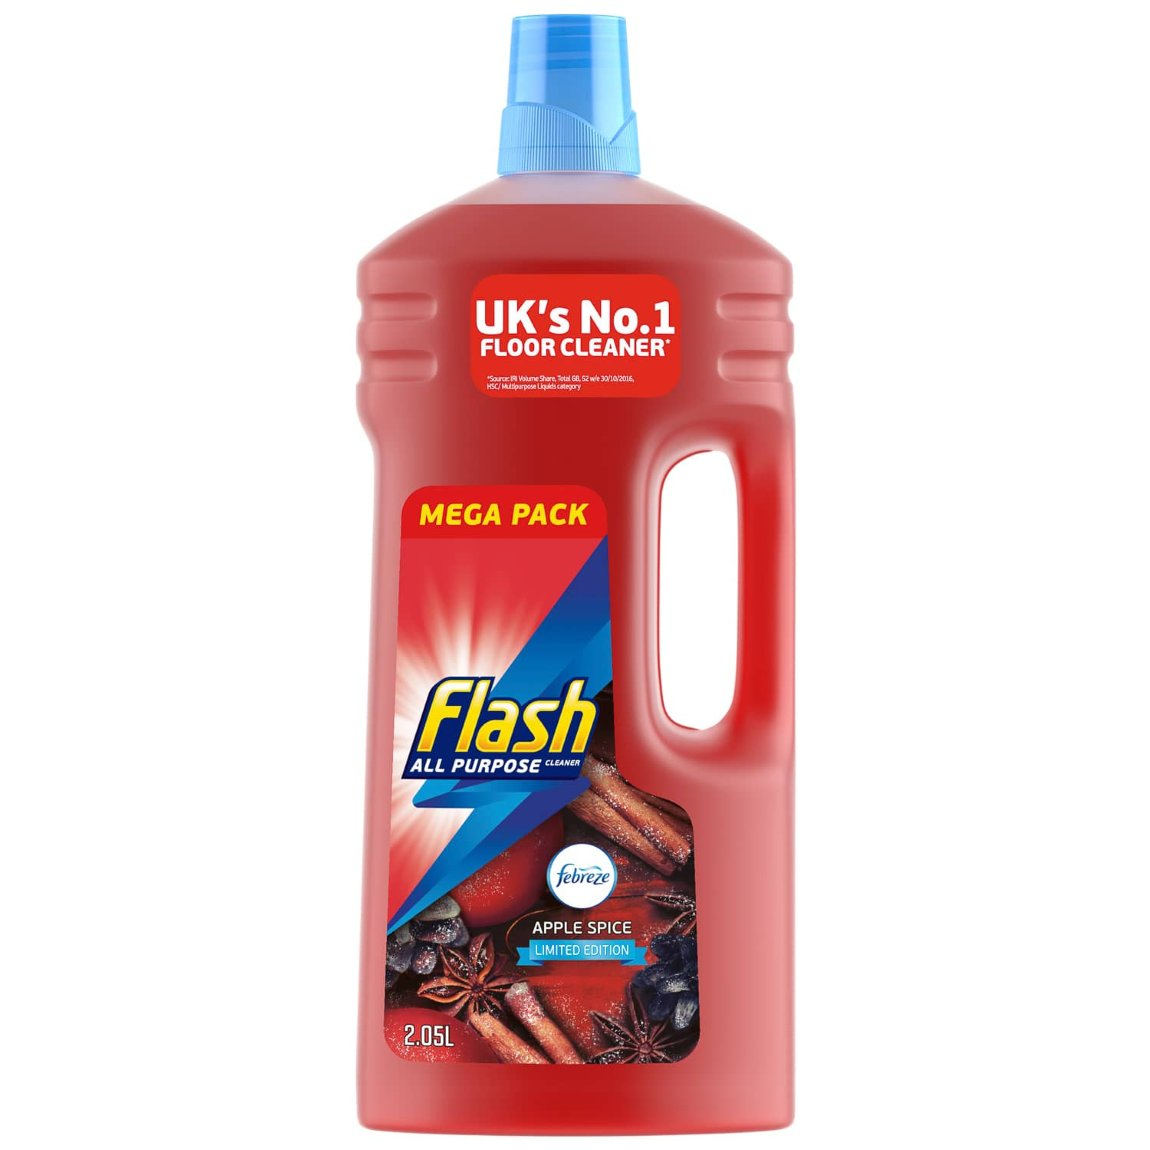 Flash All-Purpose Cleaner 2.05L - Apple Spice